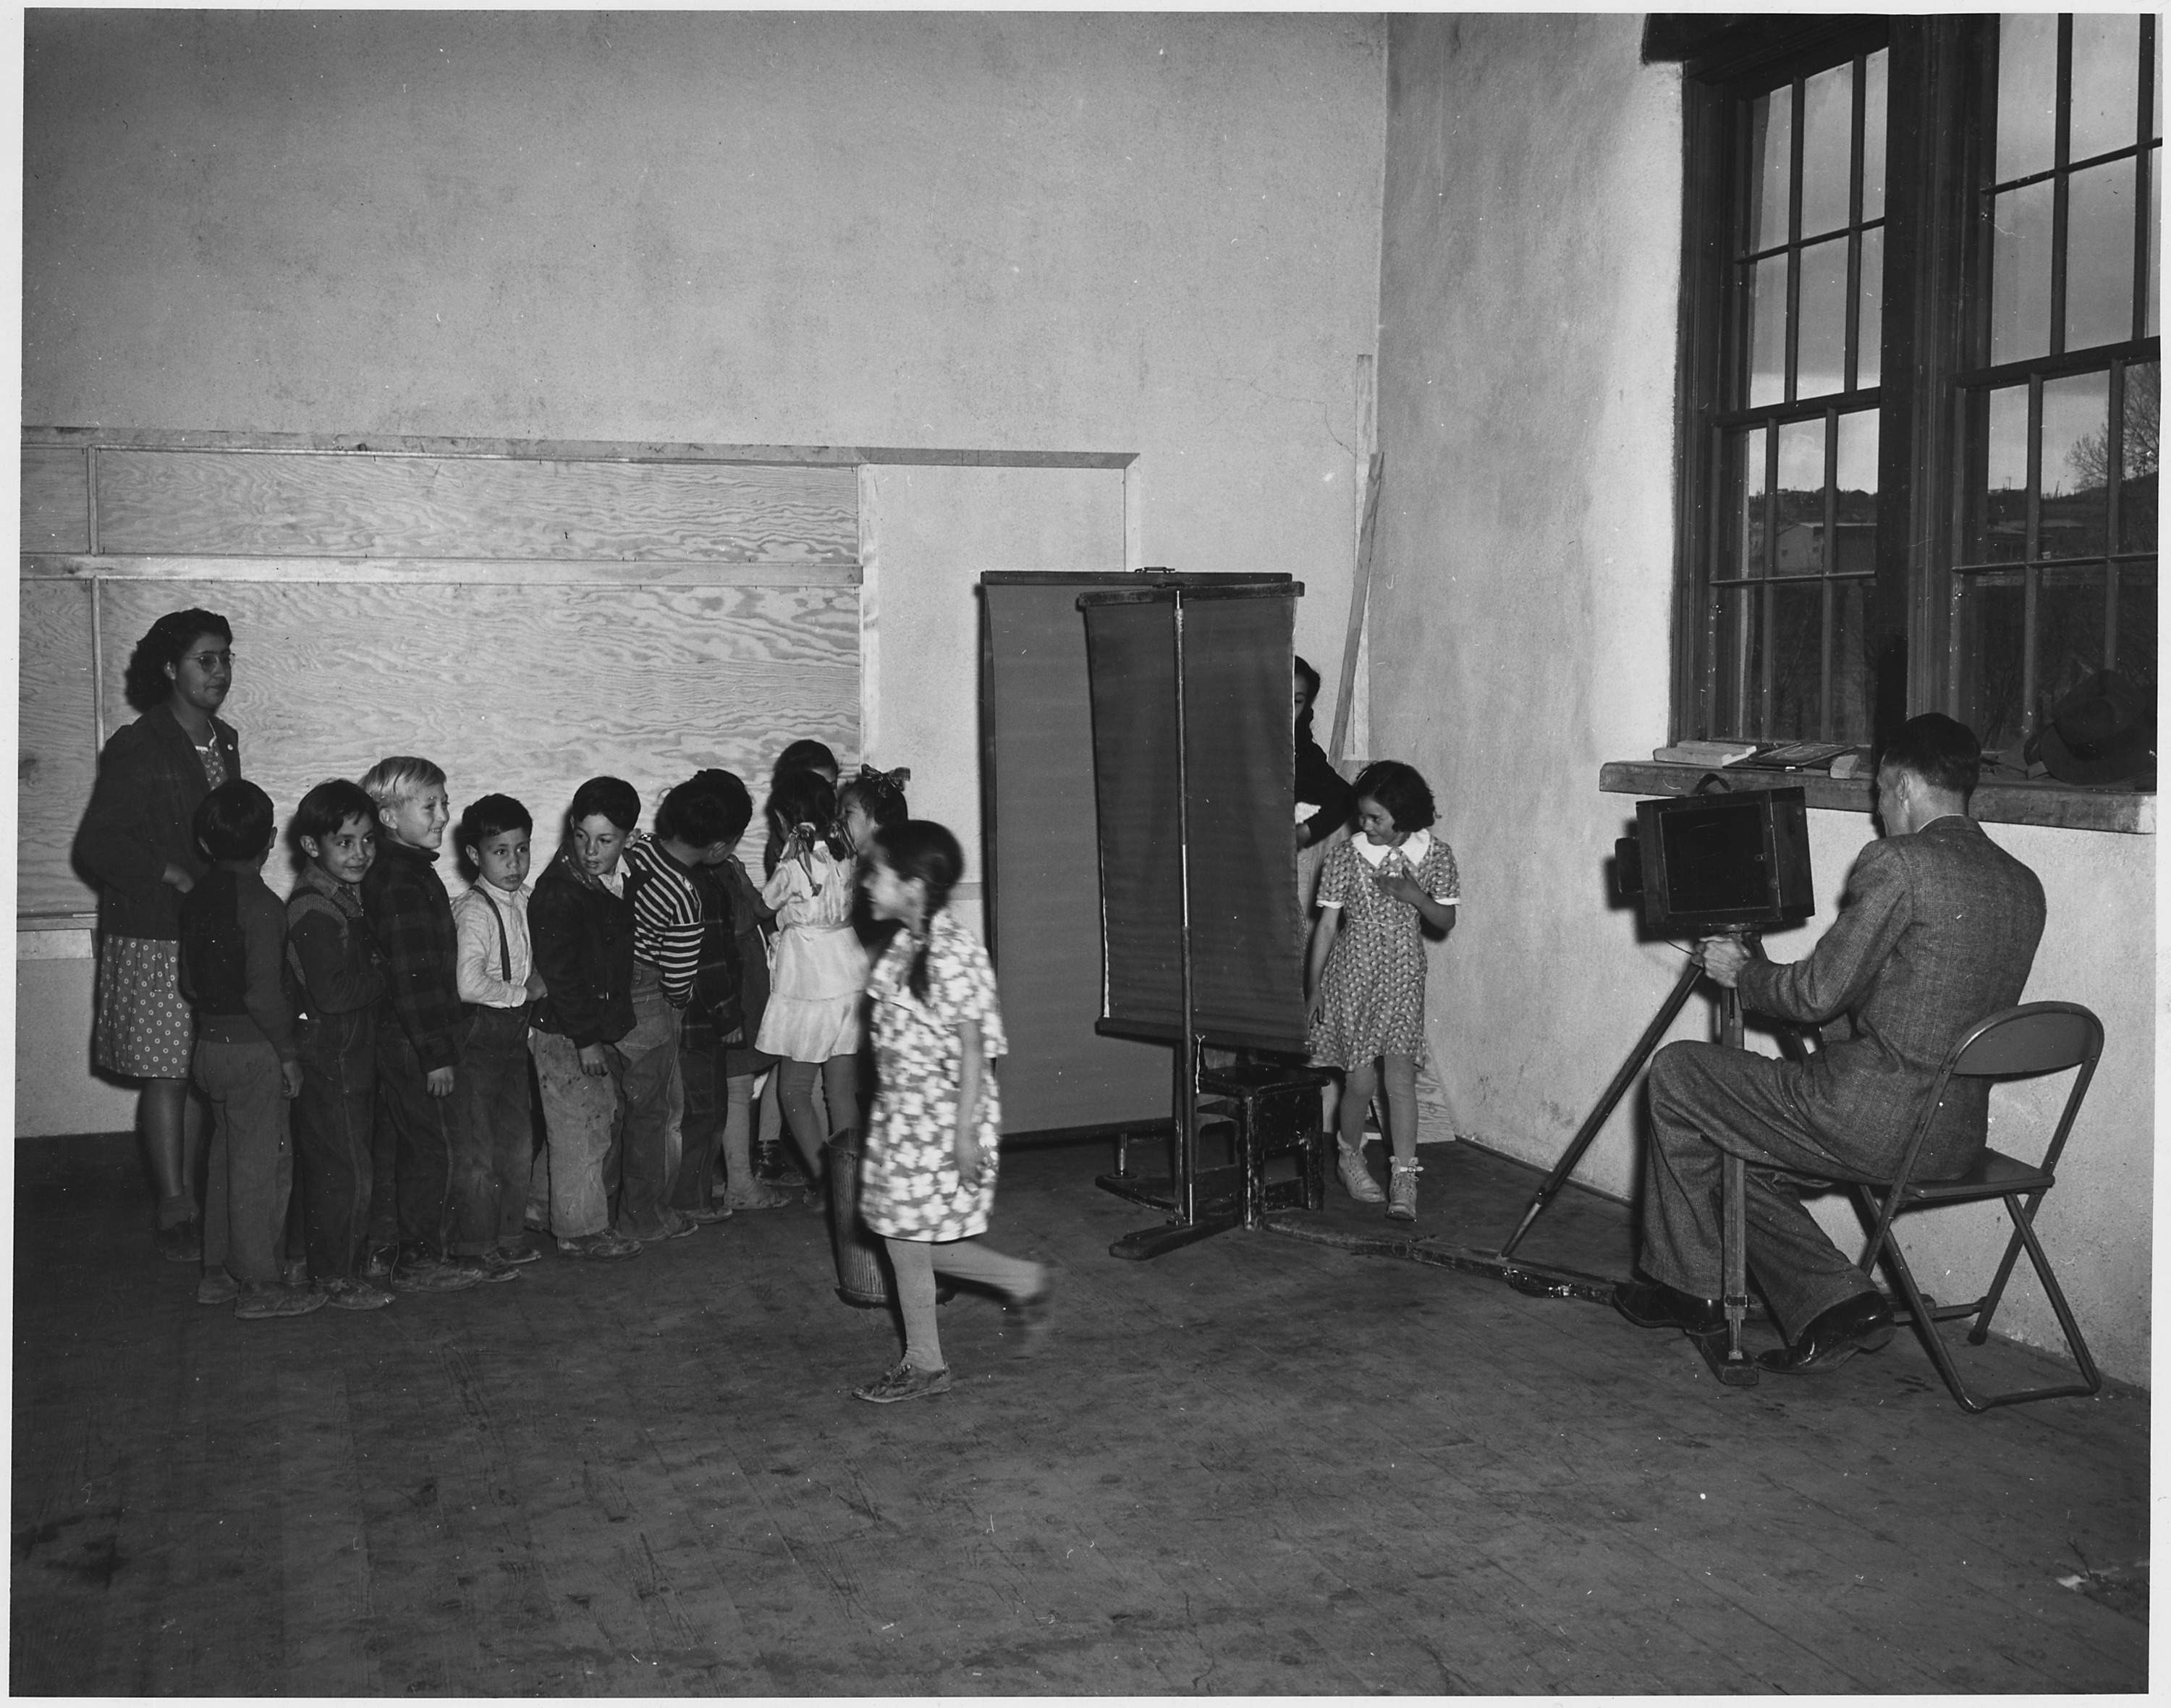 Black and white photograph of the corner of an adobe classroom. Children are lined up to have their school pictures taken by a man seated on a metal folding chair, operating his wood box camera on a tripod. Behind the students is a female teacher in polka dot dress and a dark jacket. In the foreground is a young girl with pigtails, walking, slightly blurry from motion. Windows to the right, show a scene with mountains and sky.